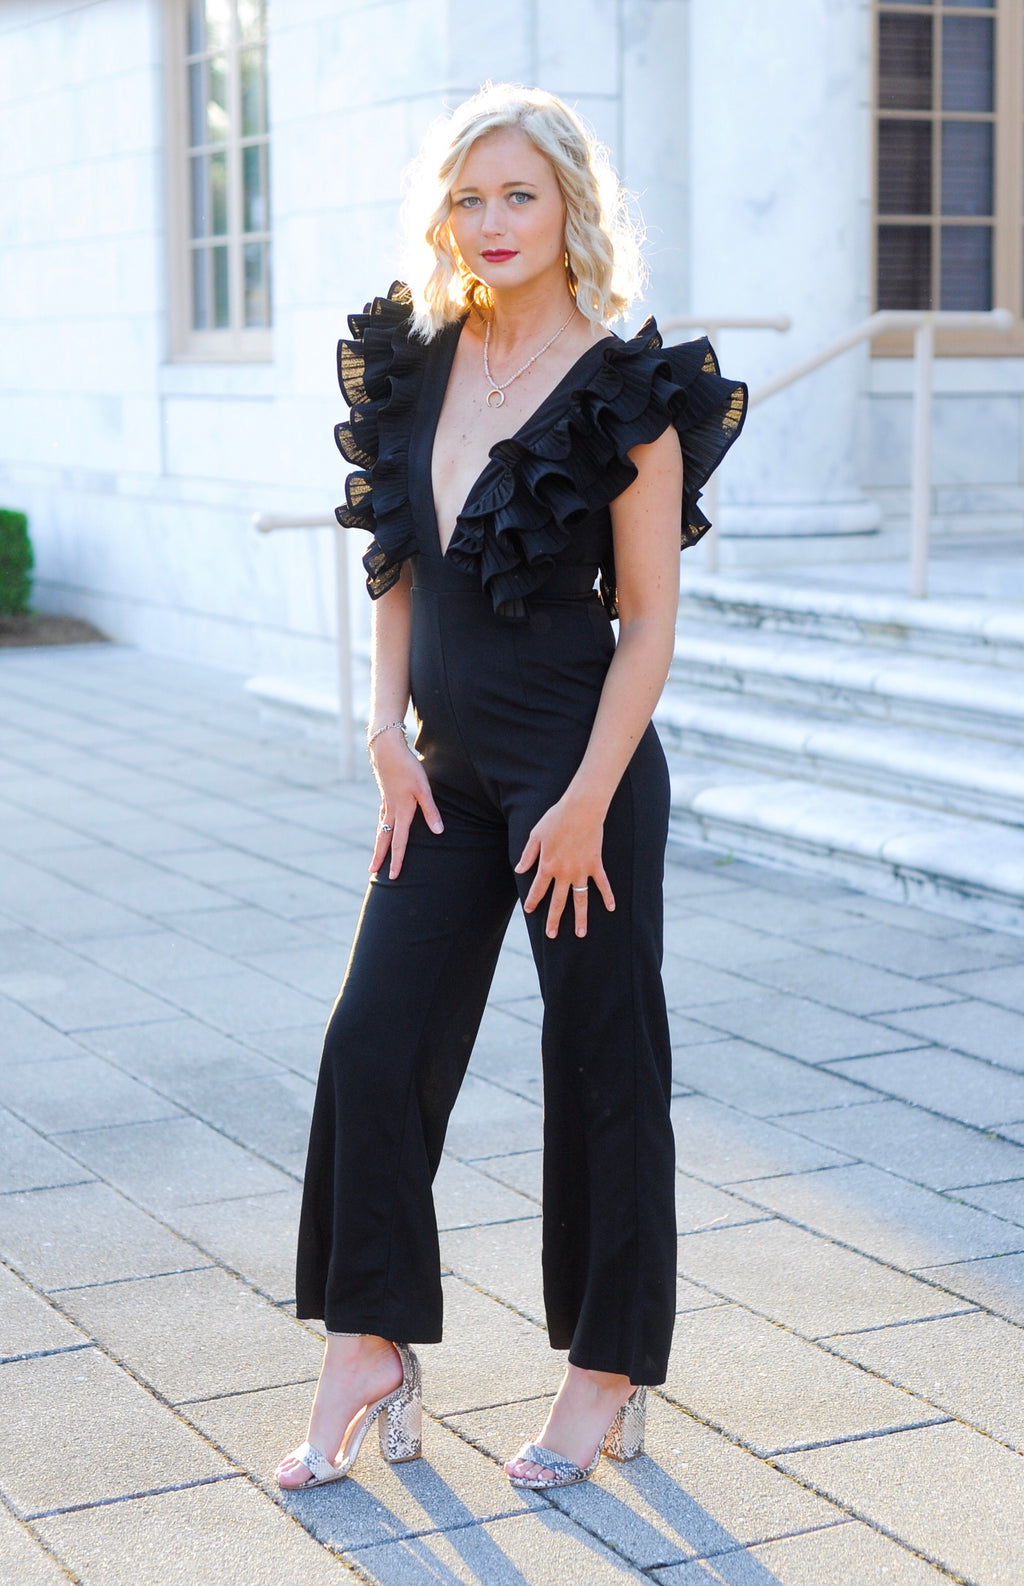 Deep V Ruffle Jumpsuit - Black